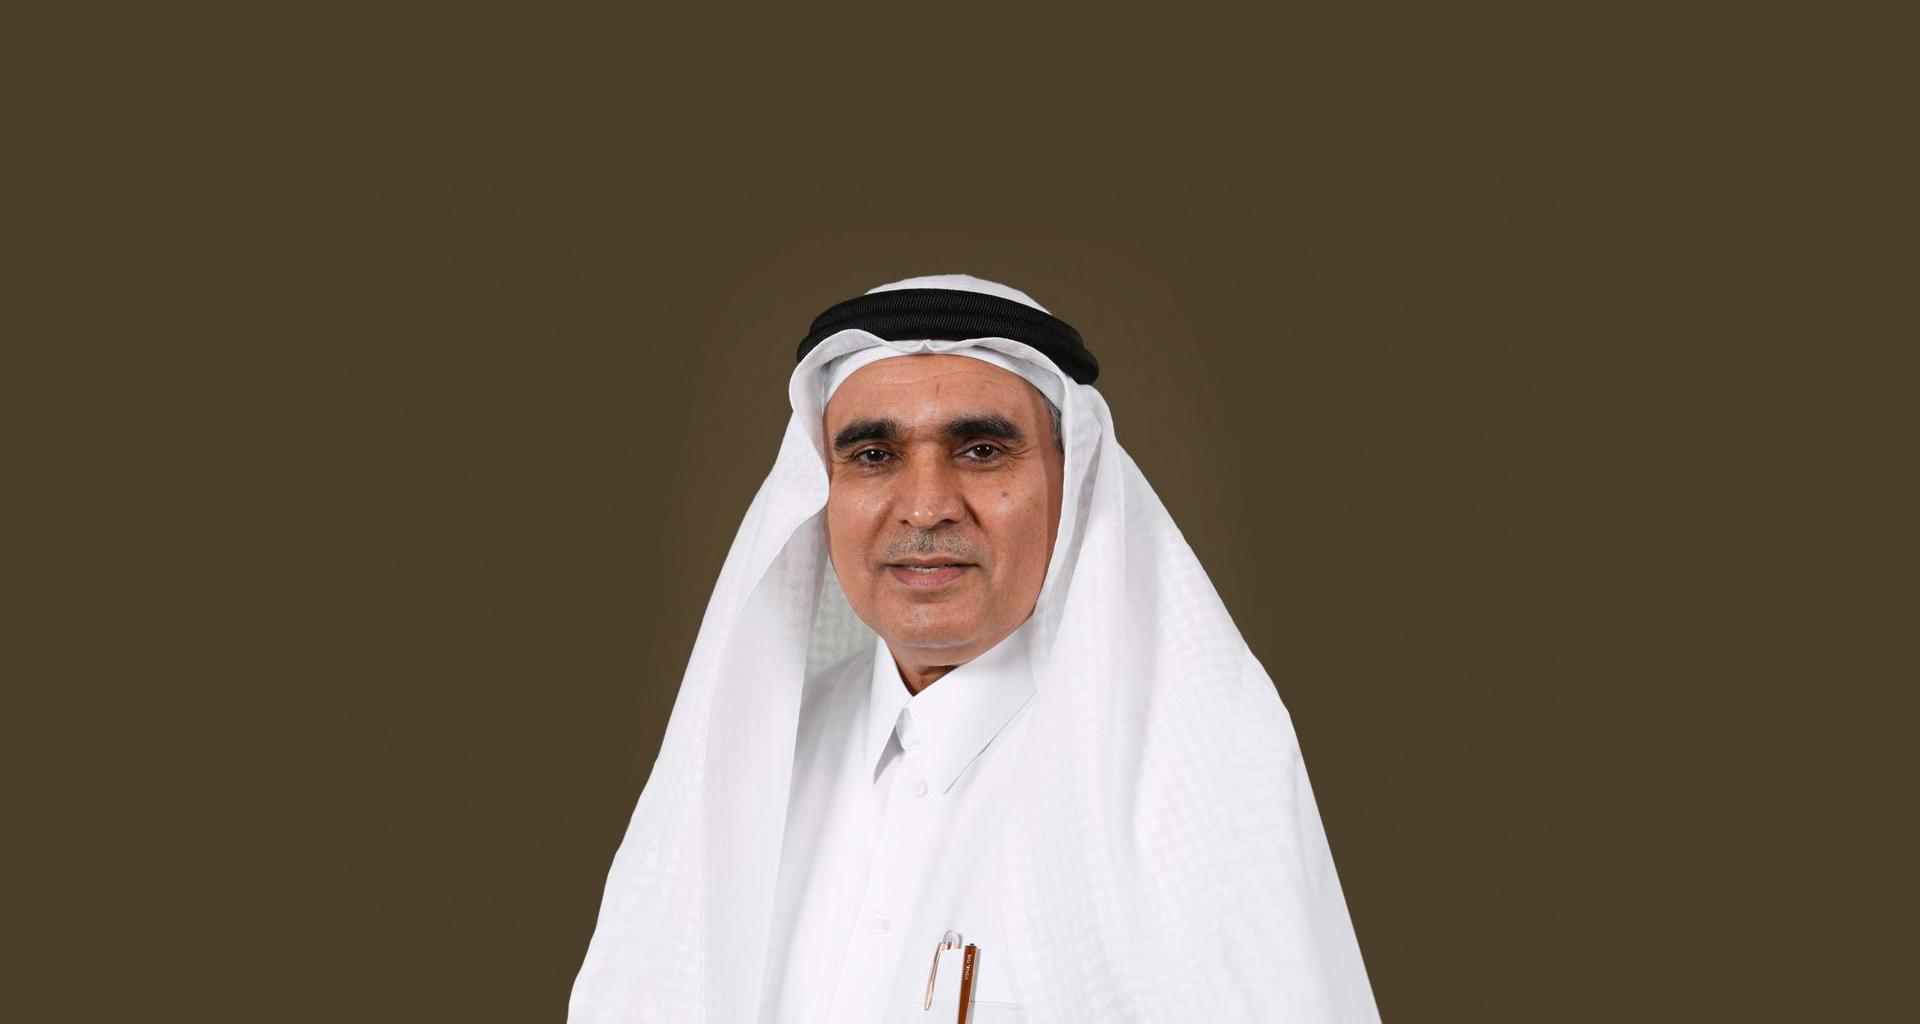 Founding Director of Qatar Computing Research Institute Receives Prestigious Data Award